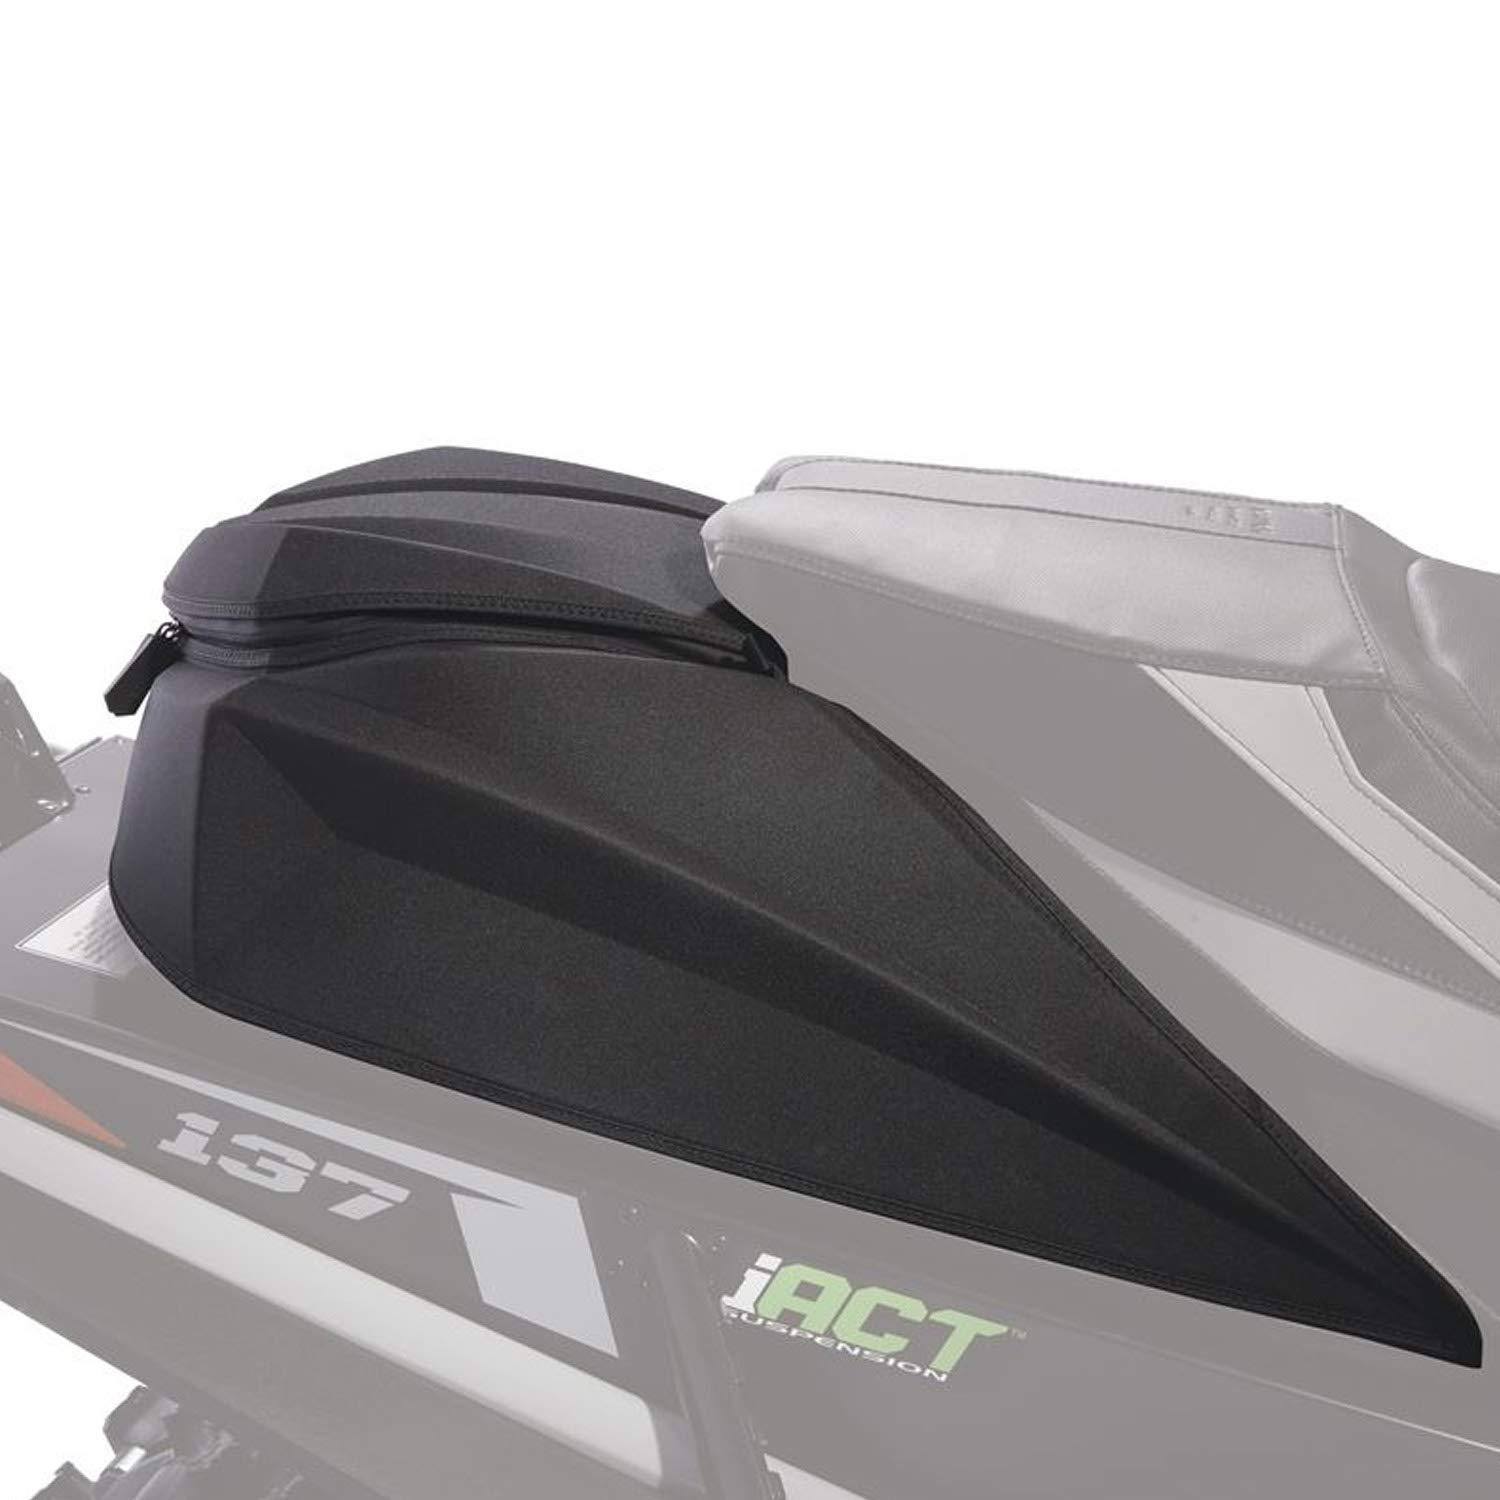 8639-030 Arctic Cat New OEM Large Black Tunnel Trial Pack Bag ZR XF